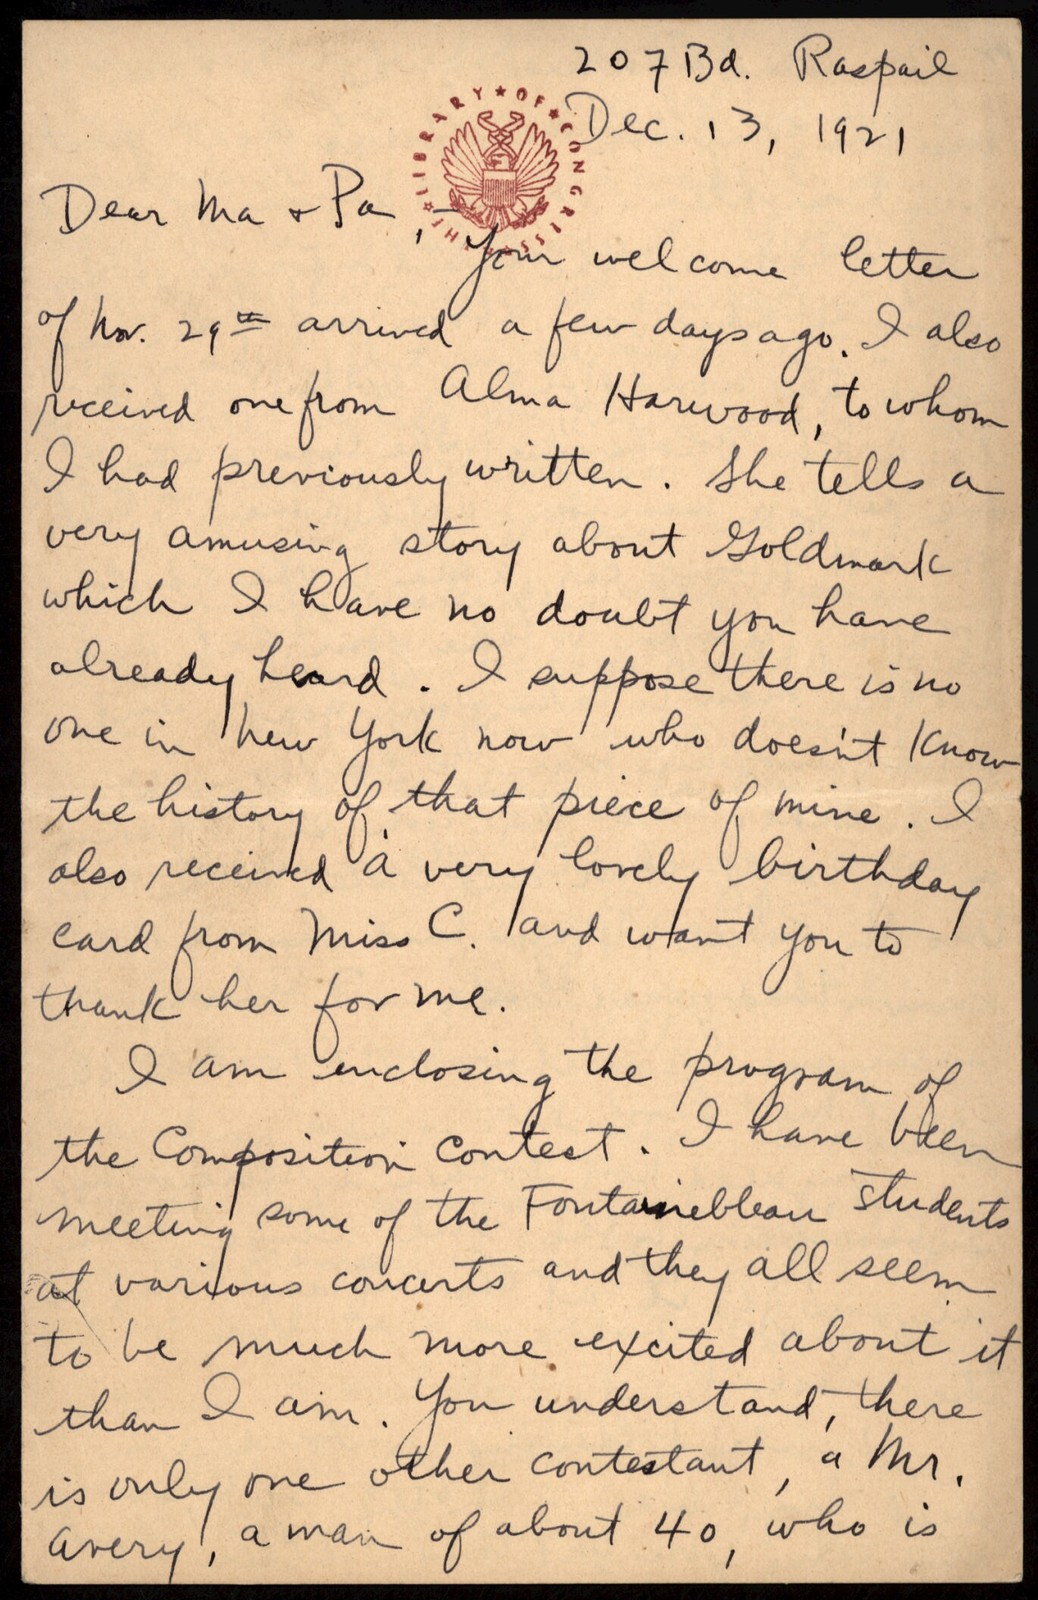 Letter from Aaron Copland to his parents, December 13, 1921.